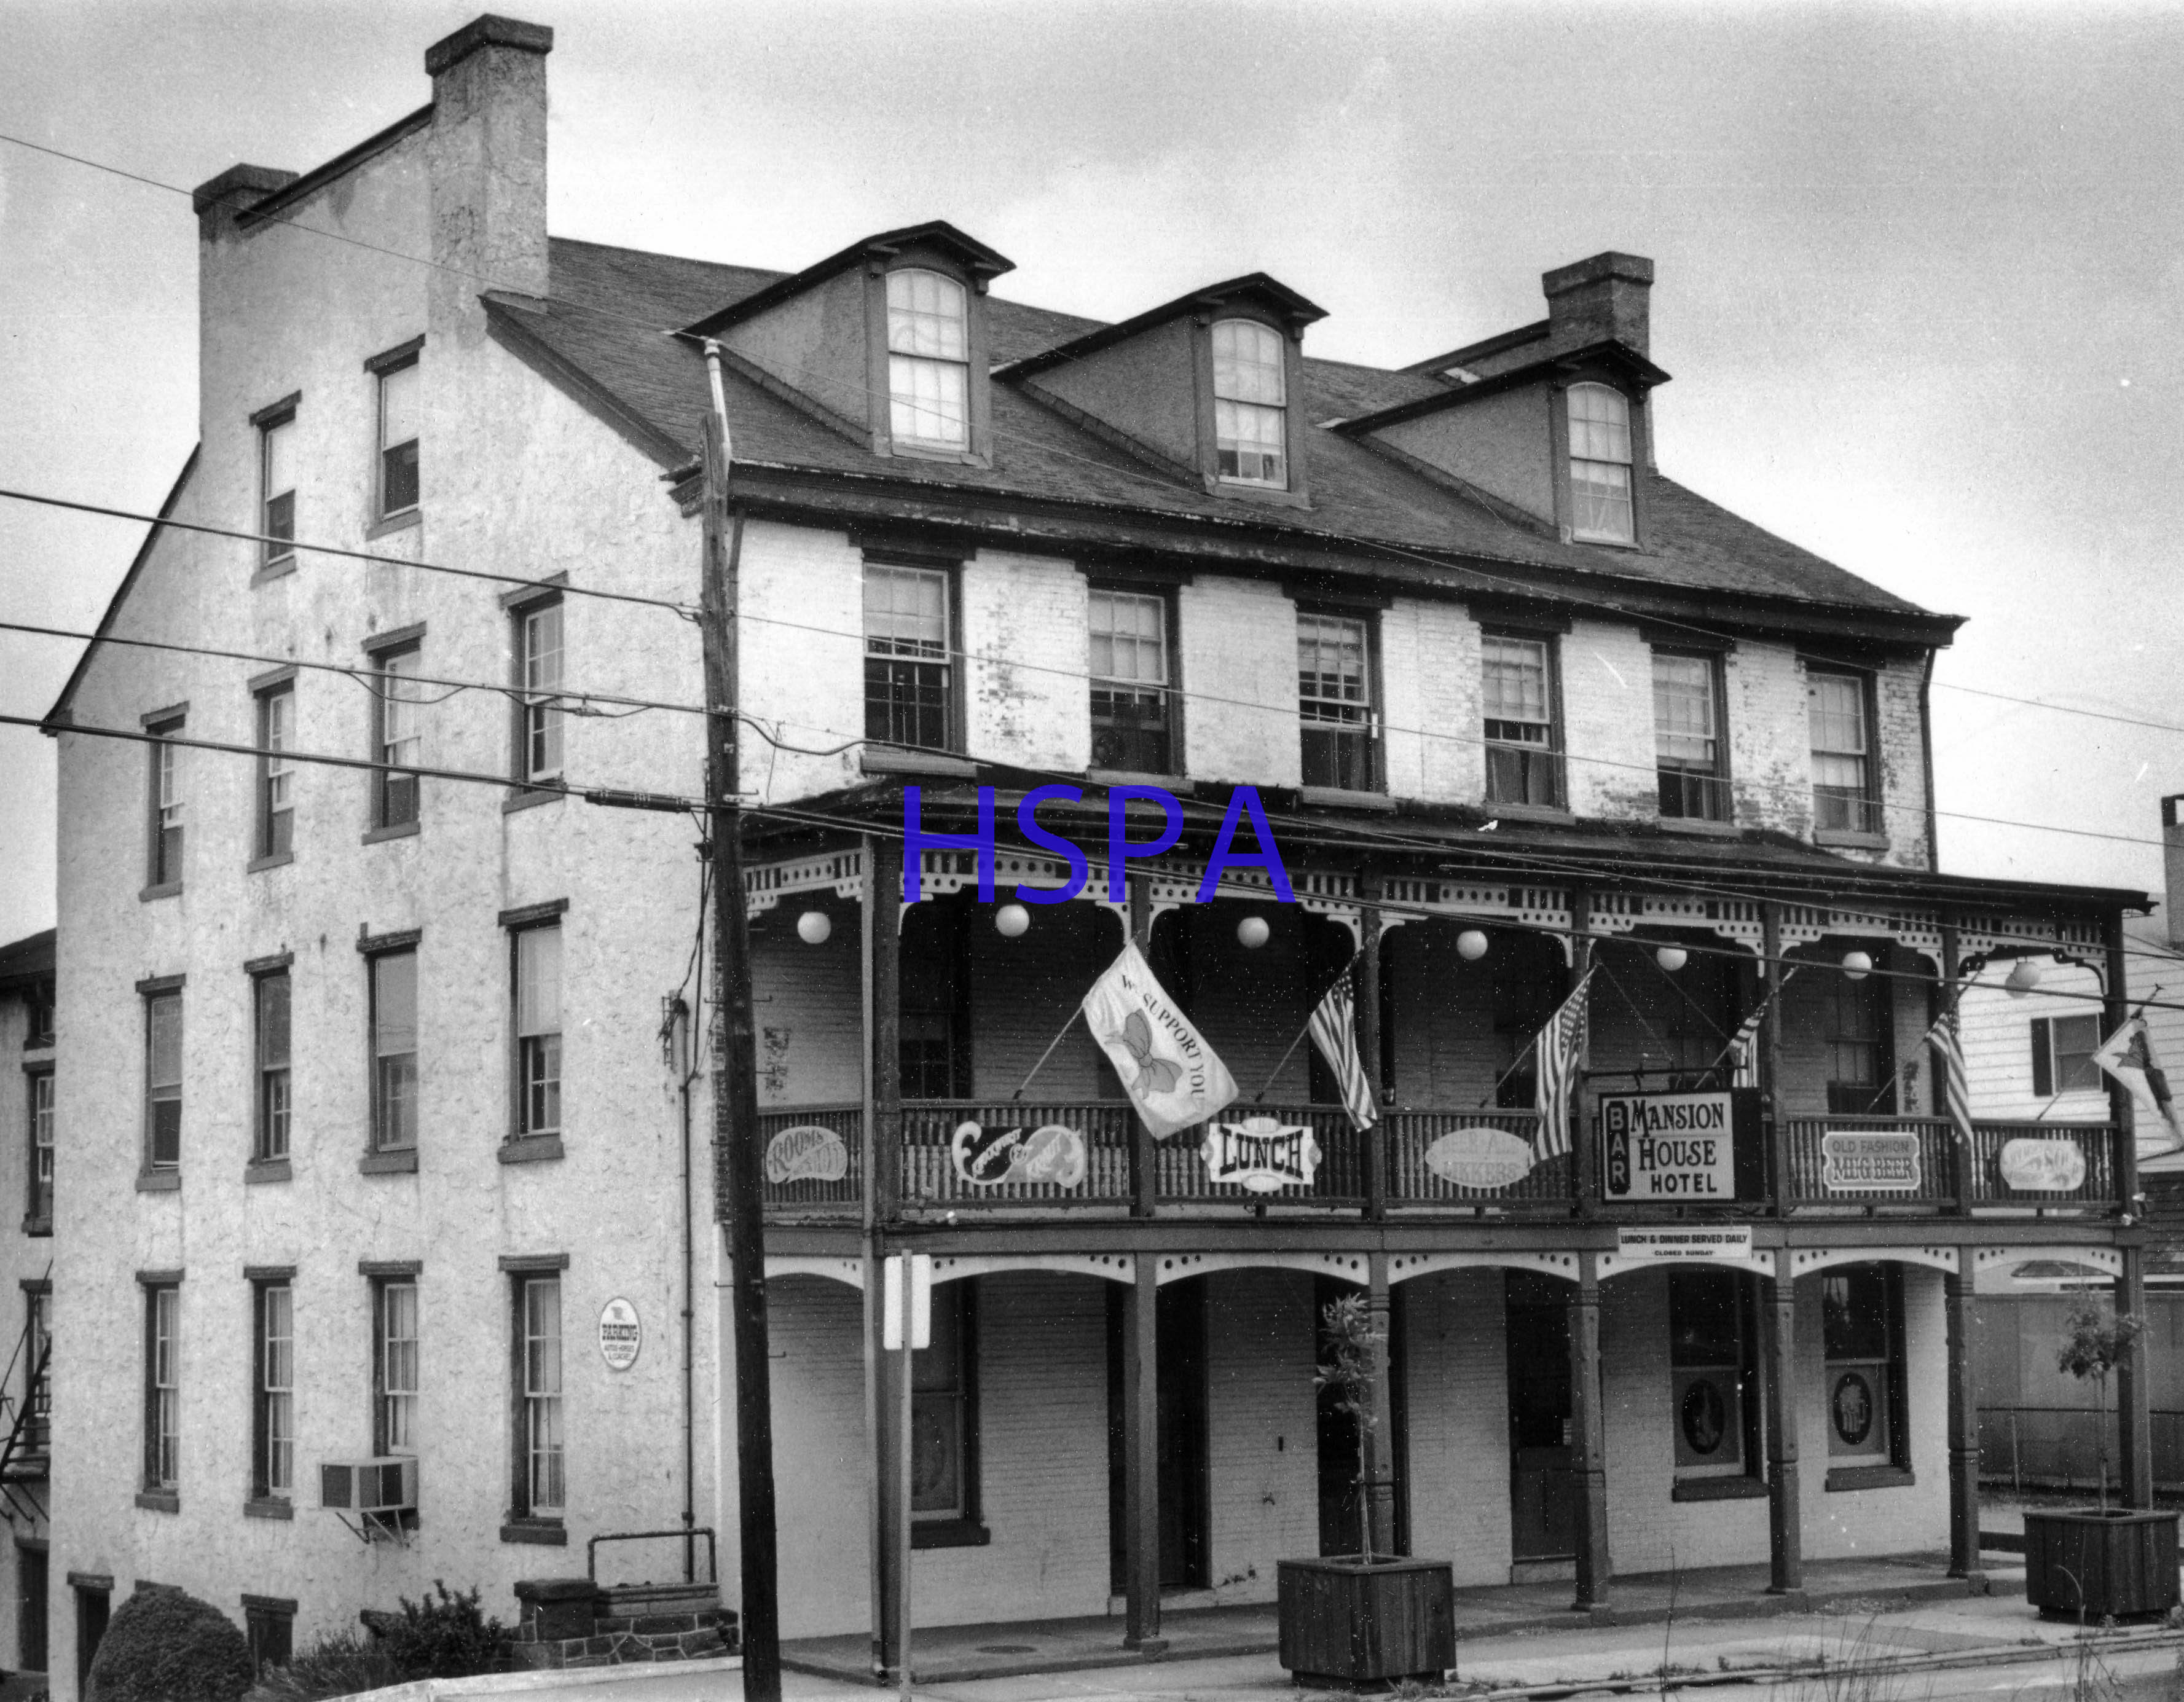 Mansion House Hotel 1970s